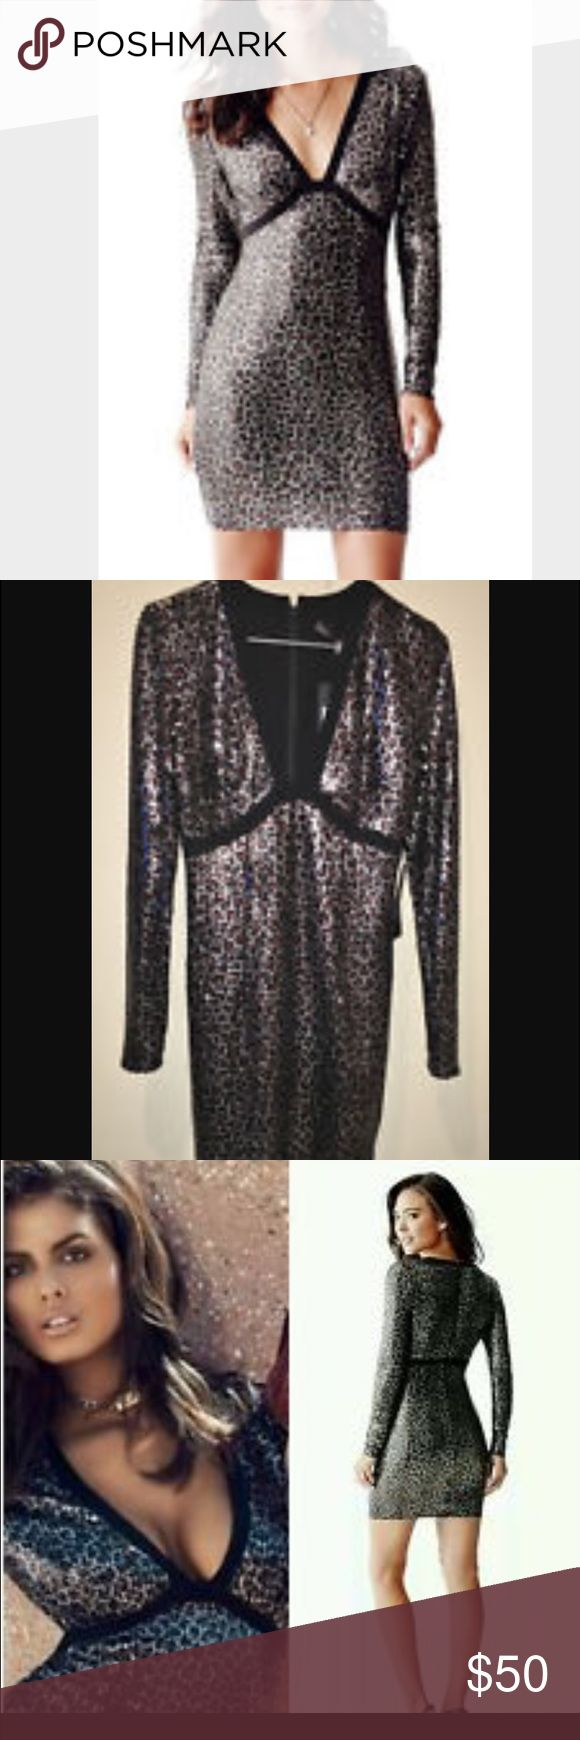 Sexy Guess Sequin dress. Very sexy Guess animal print sequin dress. Used only once. Guess Dresses Mini